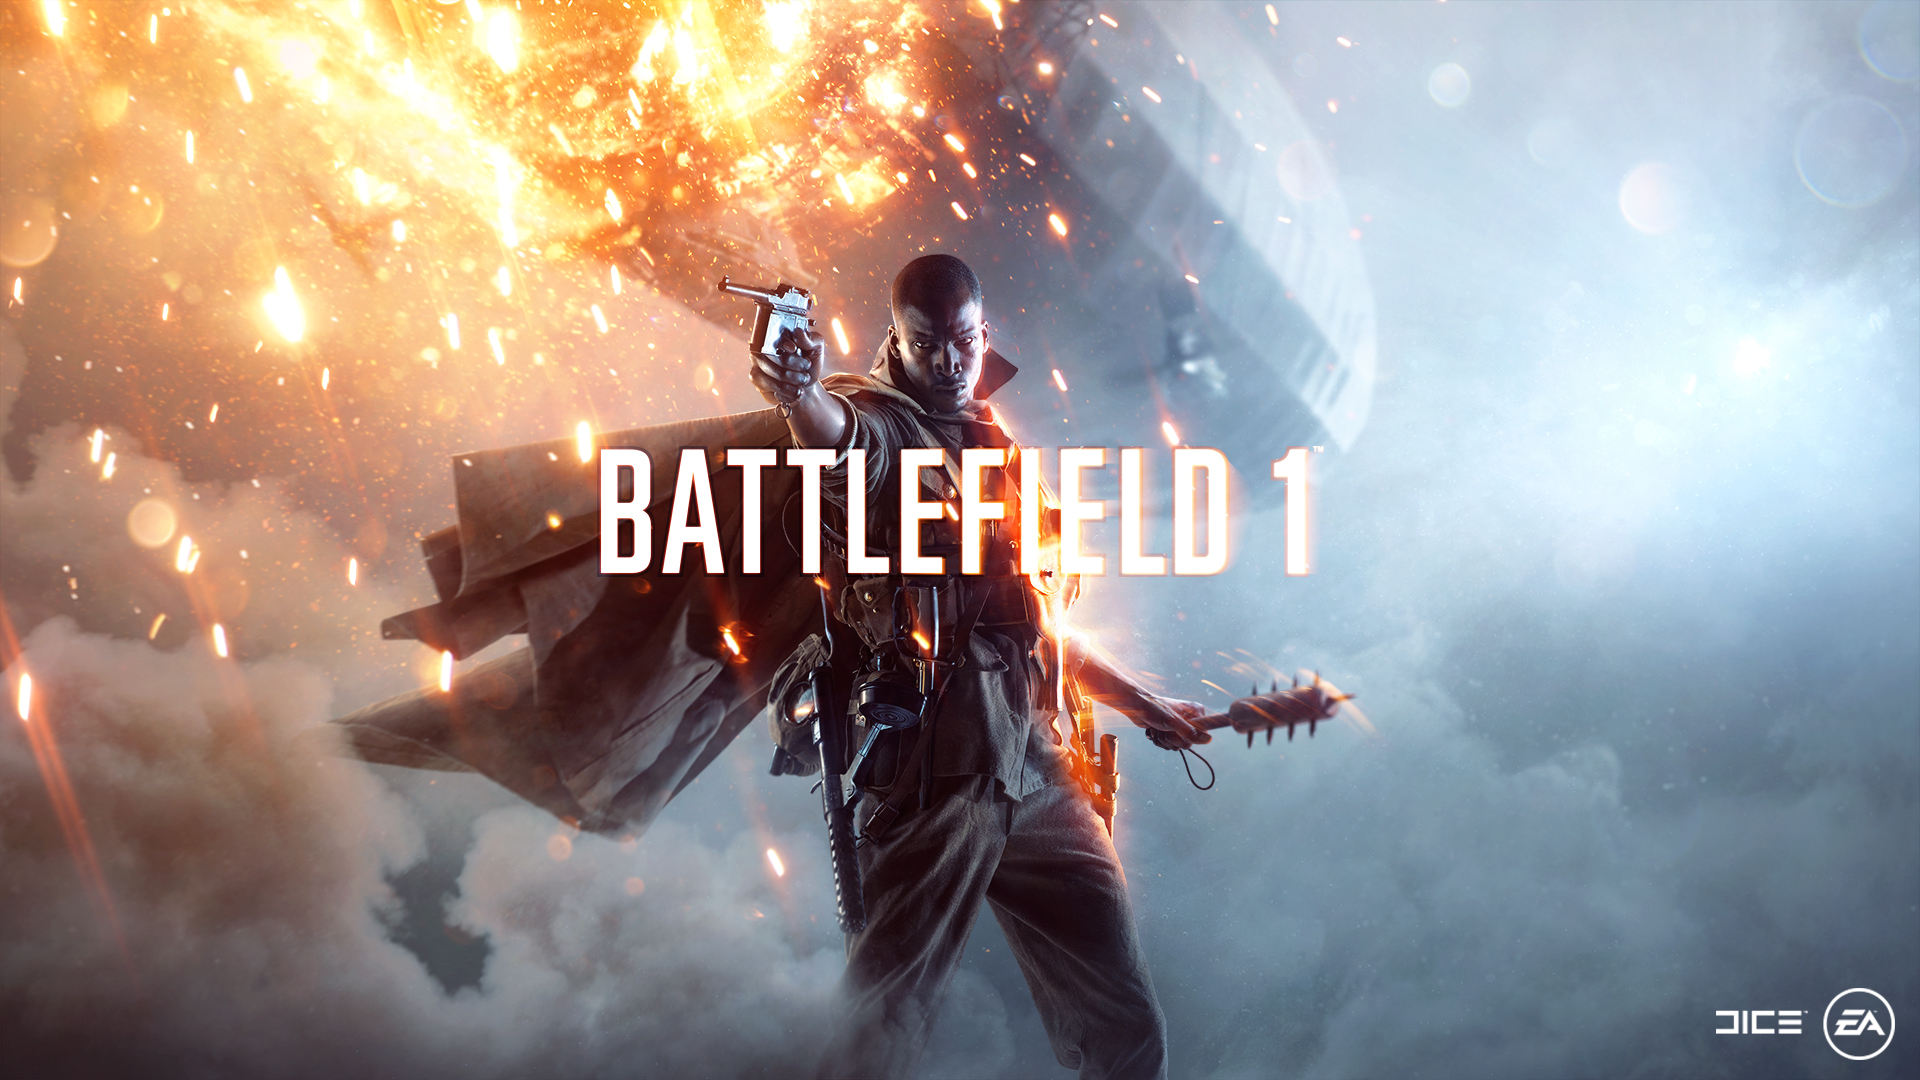 Battlefield 1 Campaign Trailer Shows New Campaign Structure